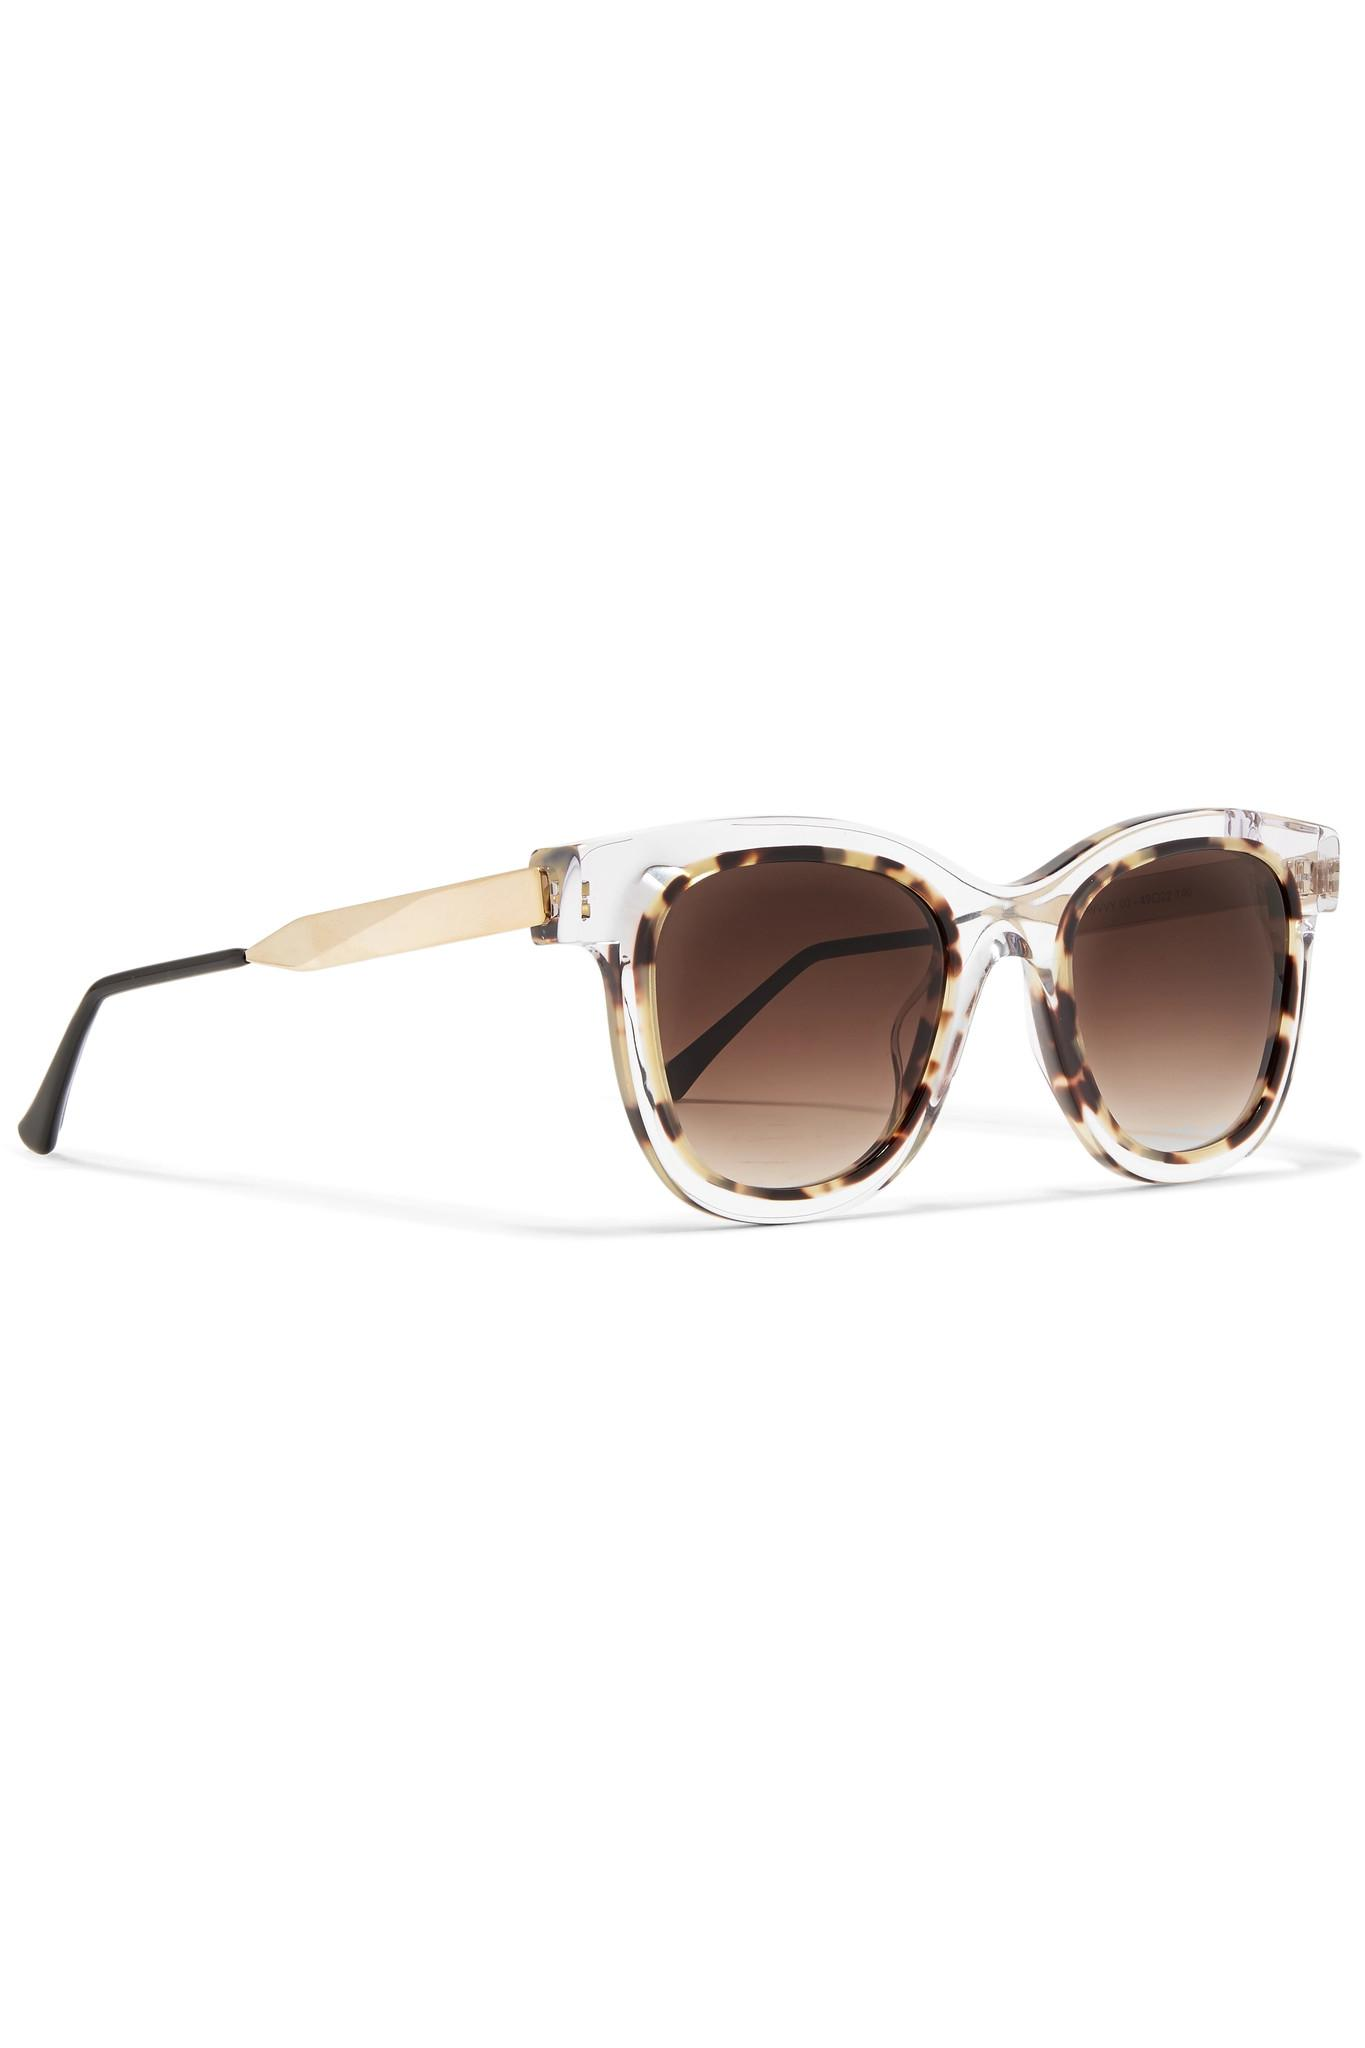 c0c438b21c Thierry Lasry - Multicolor Savvvy Cat-eye Tortoiseshell Acetate And  Gold-tone Sunglasses -. View fullscreen